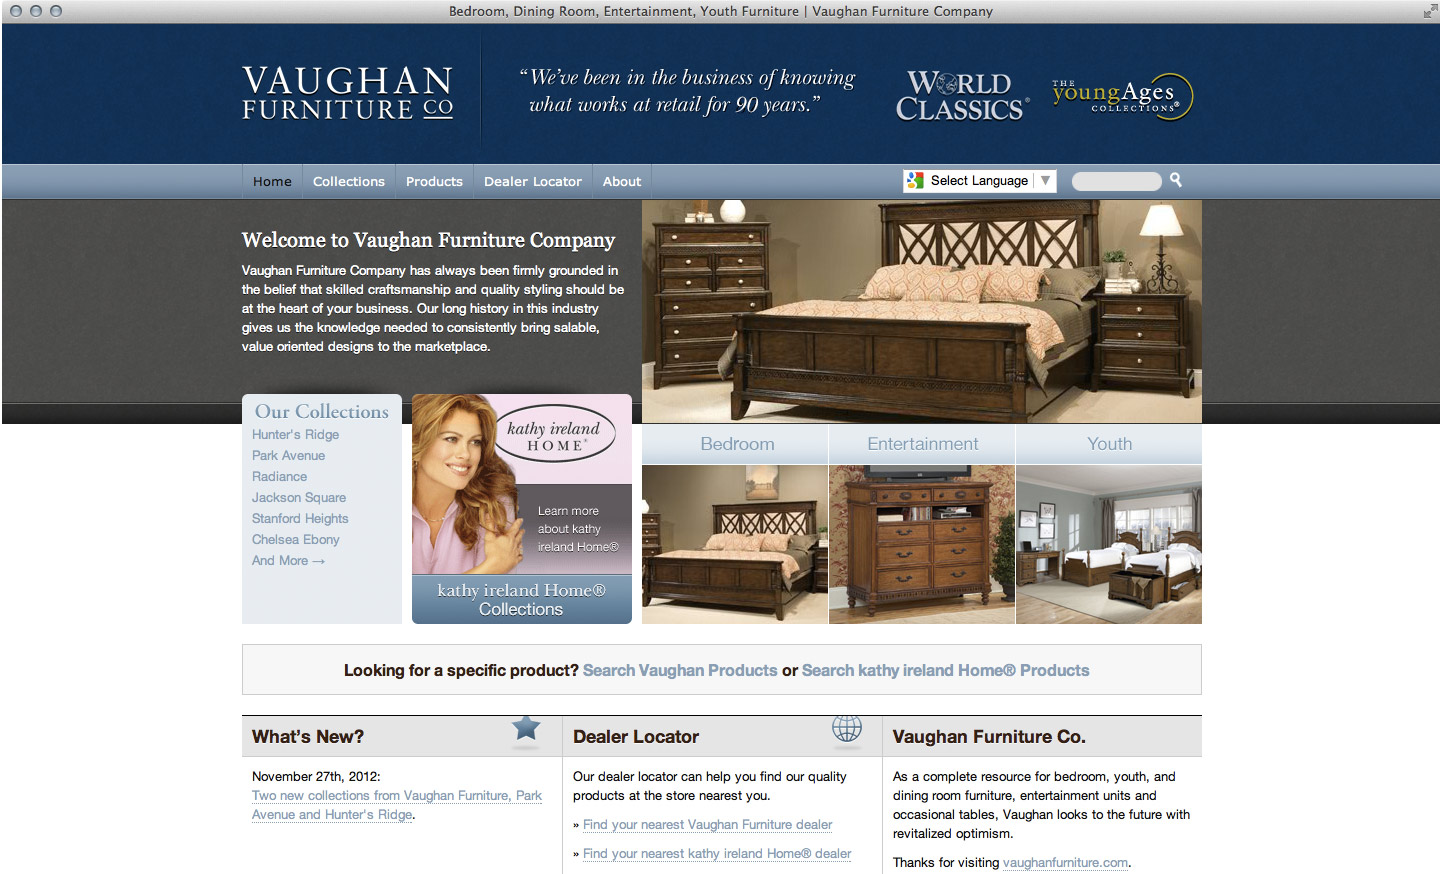 vaughanfurniture.com